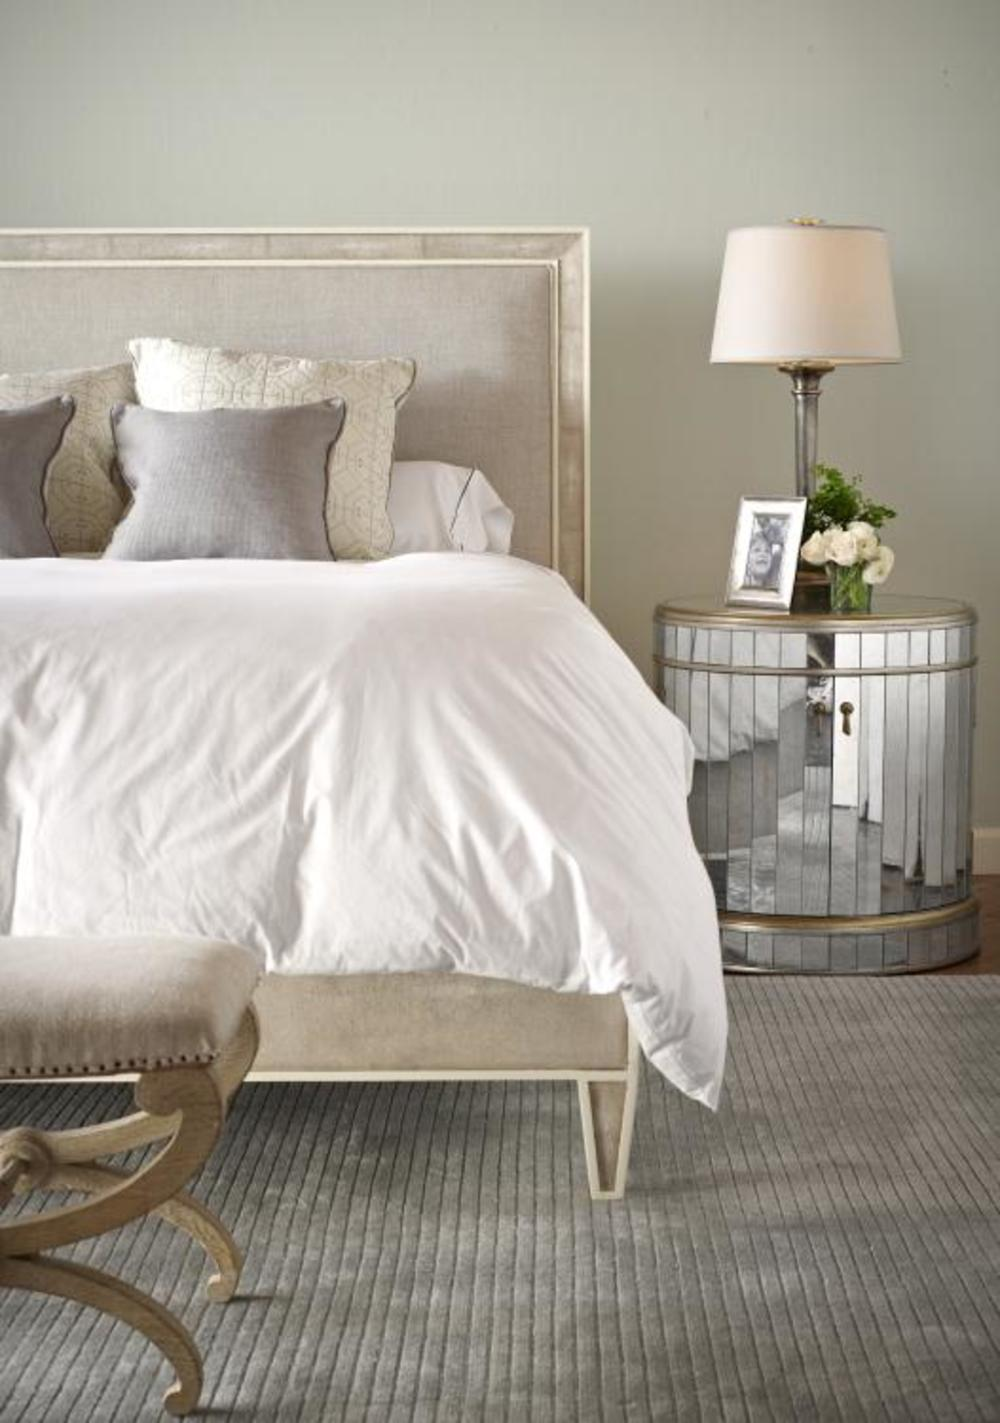 Century Furniture - Taylor Bed with Upholstered Headboard